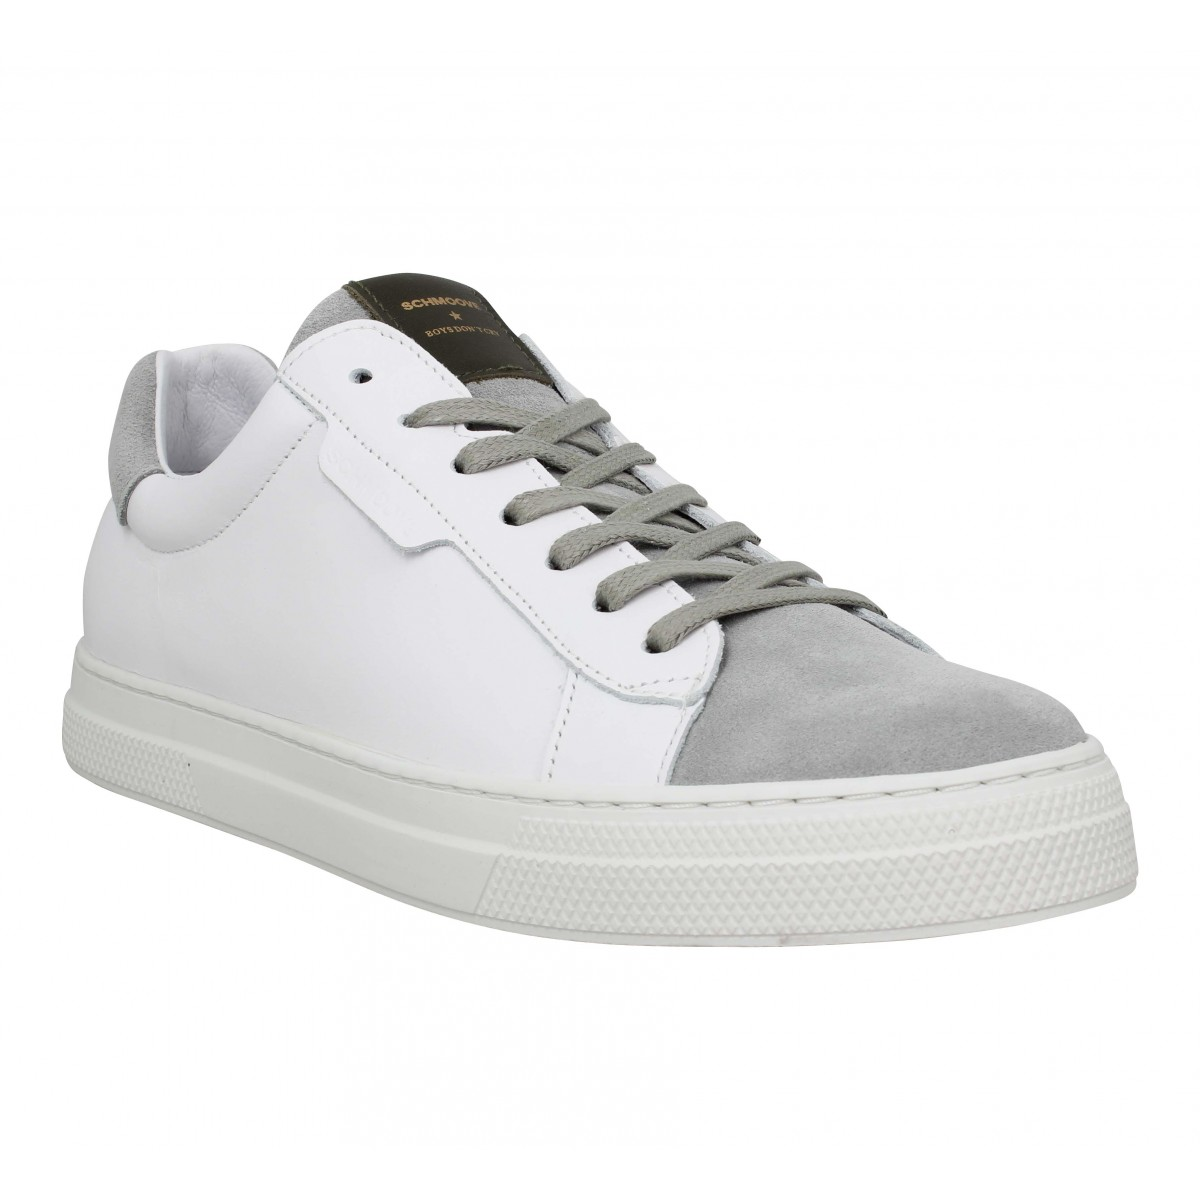 Baskets SCHMOOVE Spark Clay cuir velours Homme Blanc Ciment